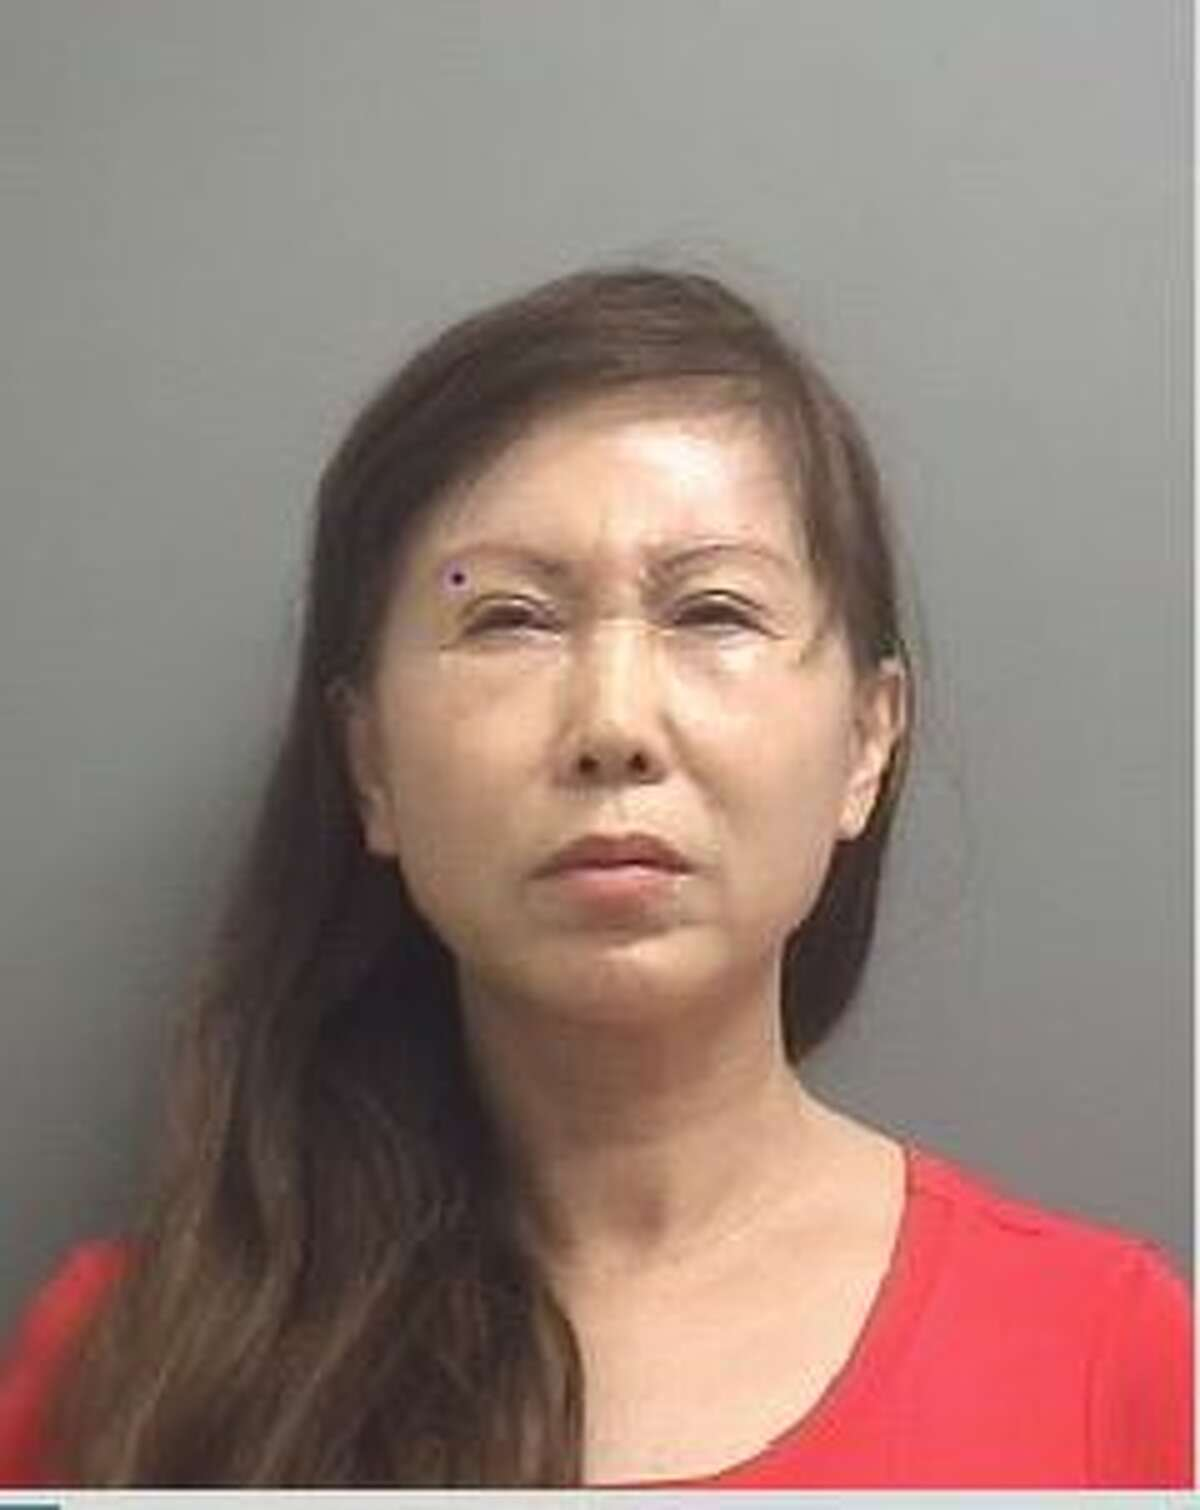 Jianping Hao, 59, of Pearland, was arrested and charged with prostitution Oct. 12 during an undercover investigation of La Porte's Plant Spa by La Porte Police. Hao allegedly worked at the spa. (La Porte Police)